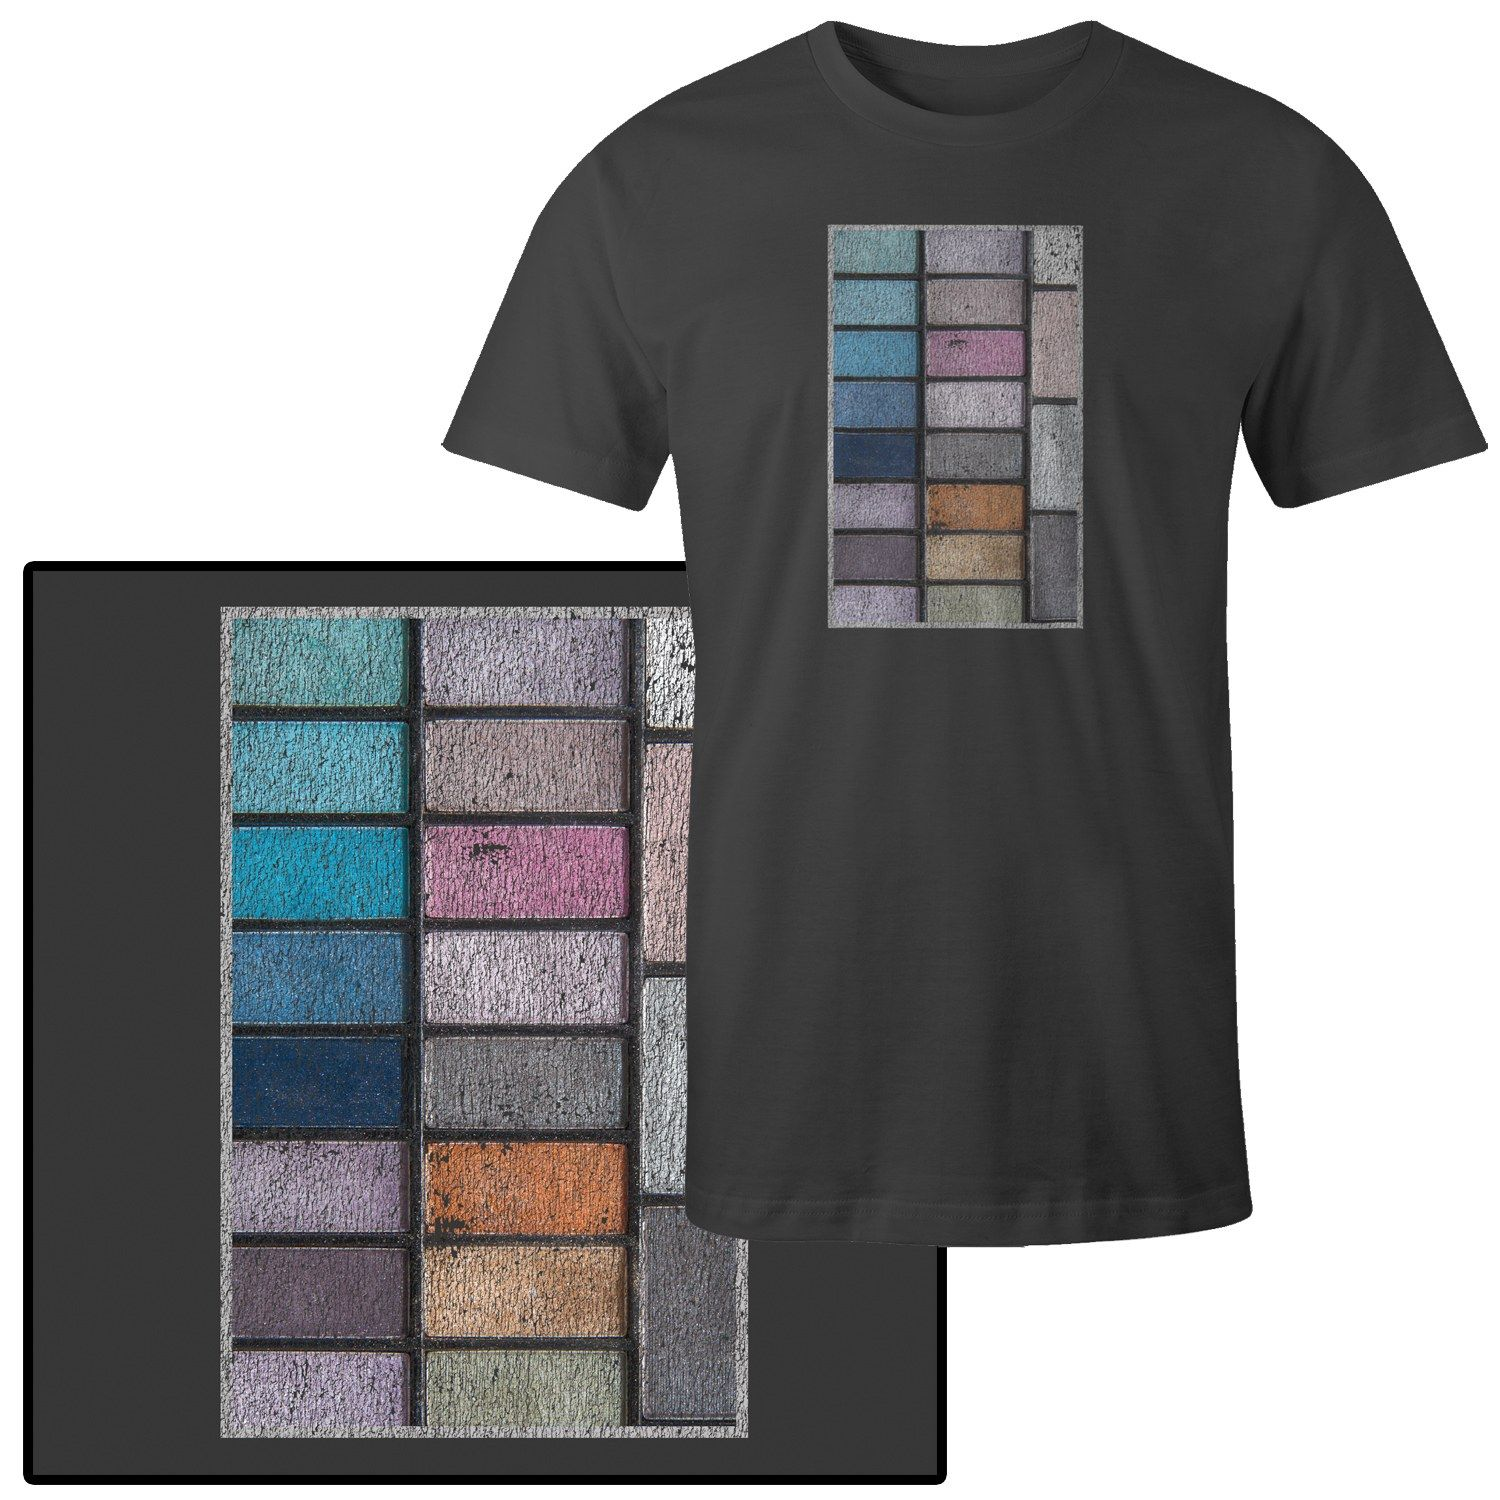 Men's Colorful Pack of Eye Shadow Makeup in Compact T-Shirt